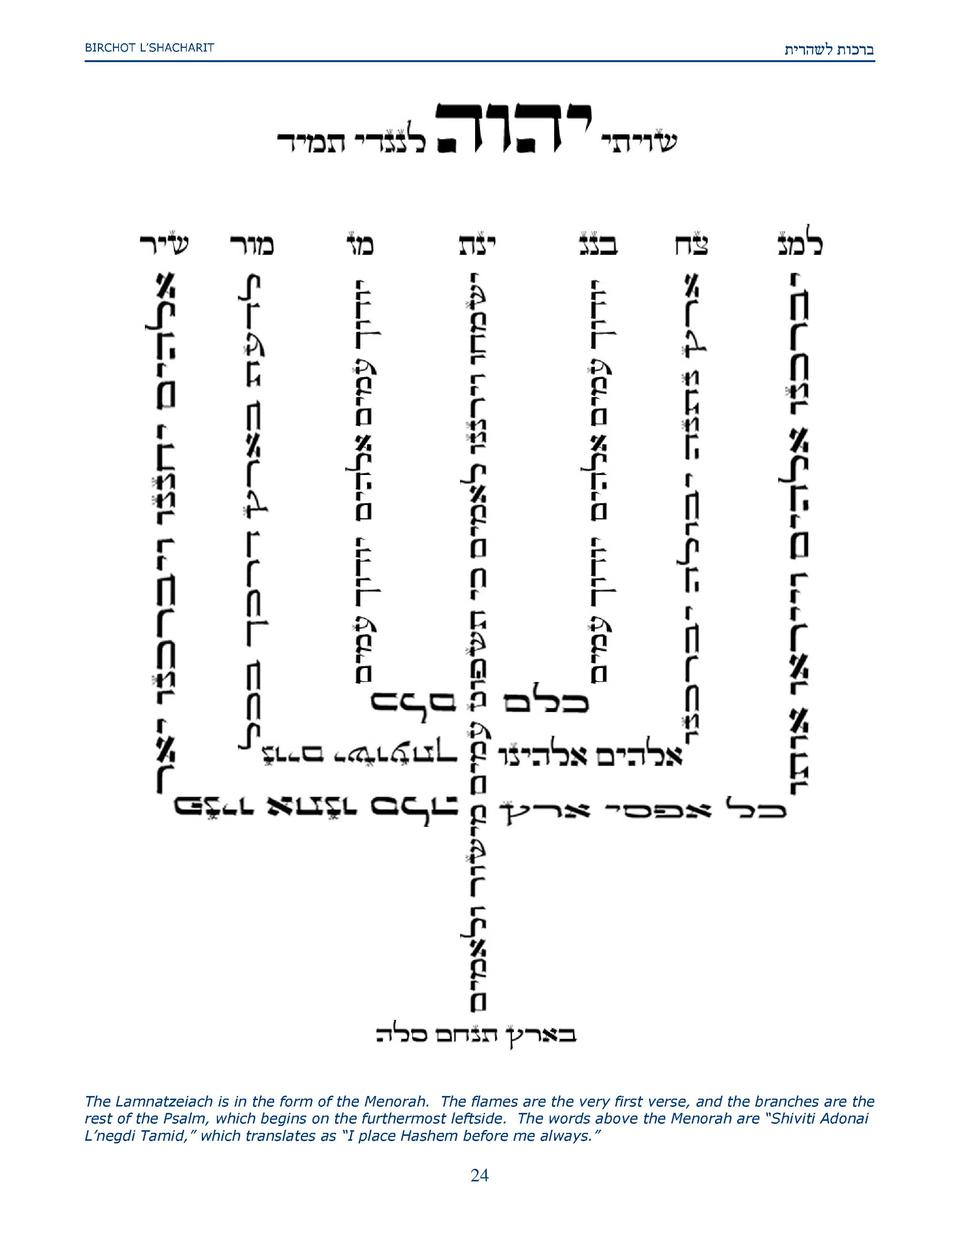 zixdyl zekxa  BIRCHOT L   SHACHARIT  The Lamnatzeiach is in the form of the Menorah. The flames are the very first verse, ...